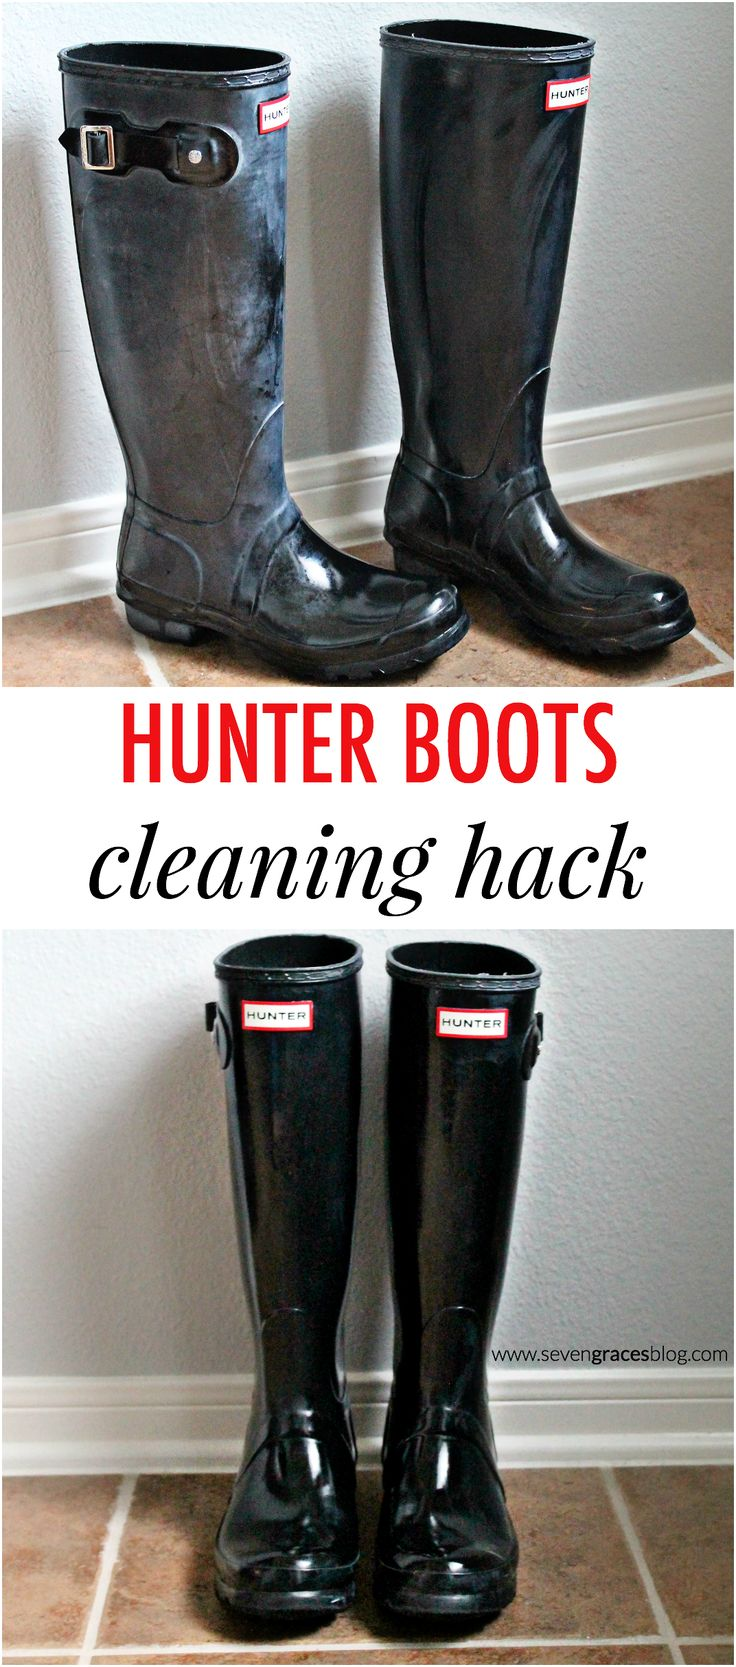 Currently Confessing: Vol. 52...The One With the Hunter Boots Cleaning Hack - Seven Graces Blog